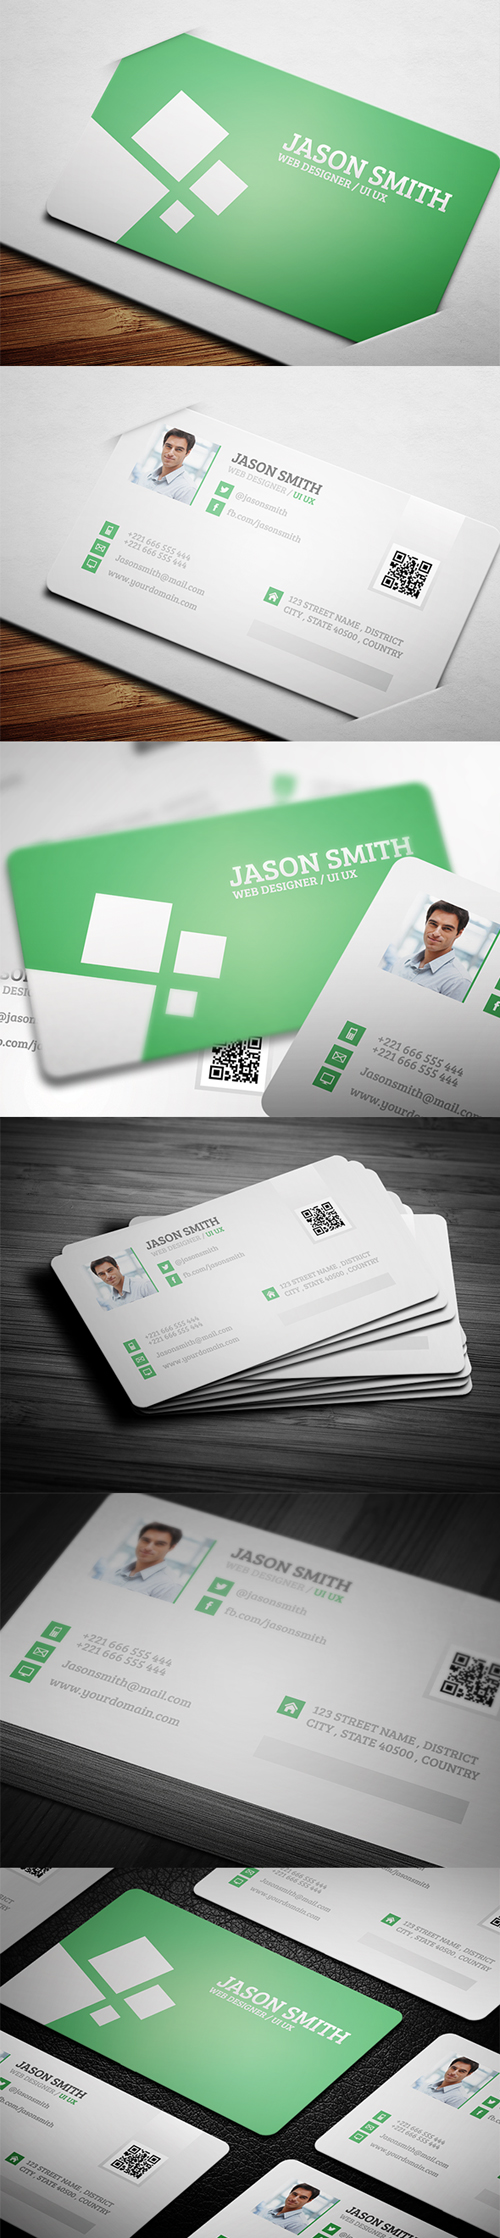 business cards template design - 5